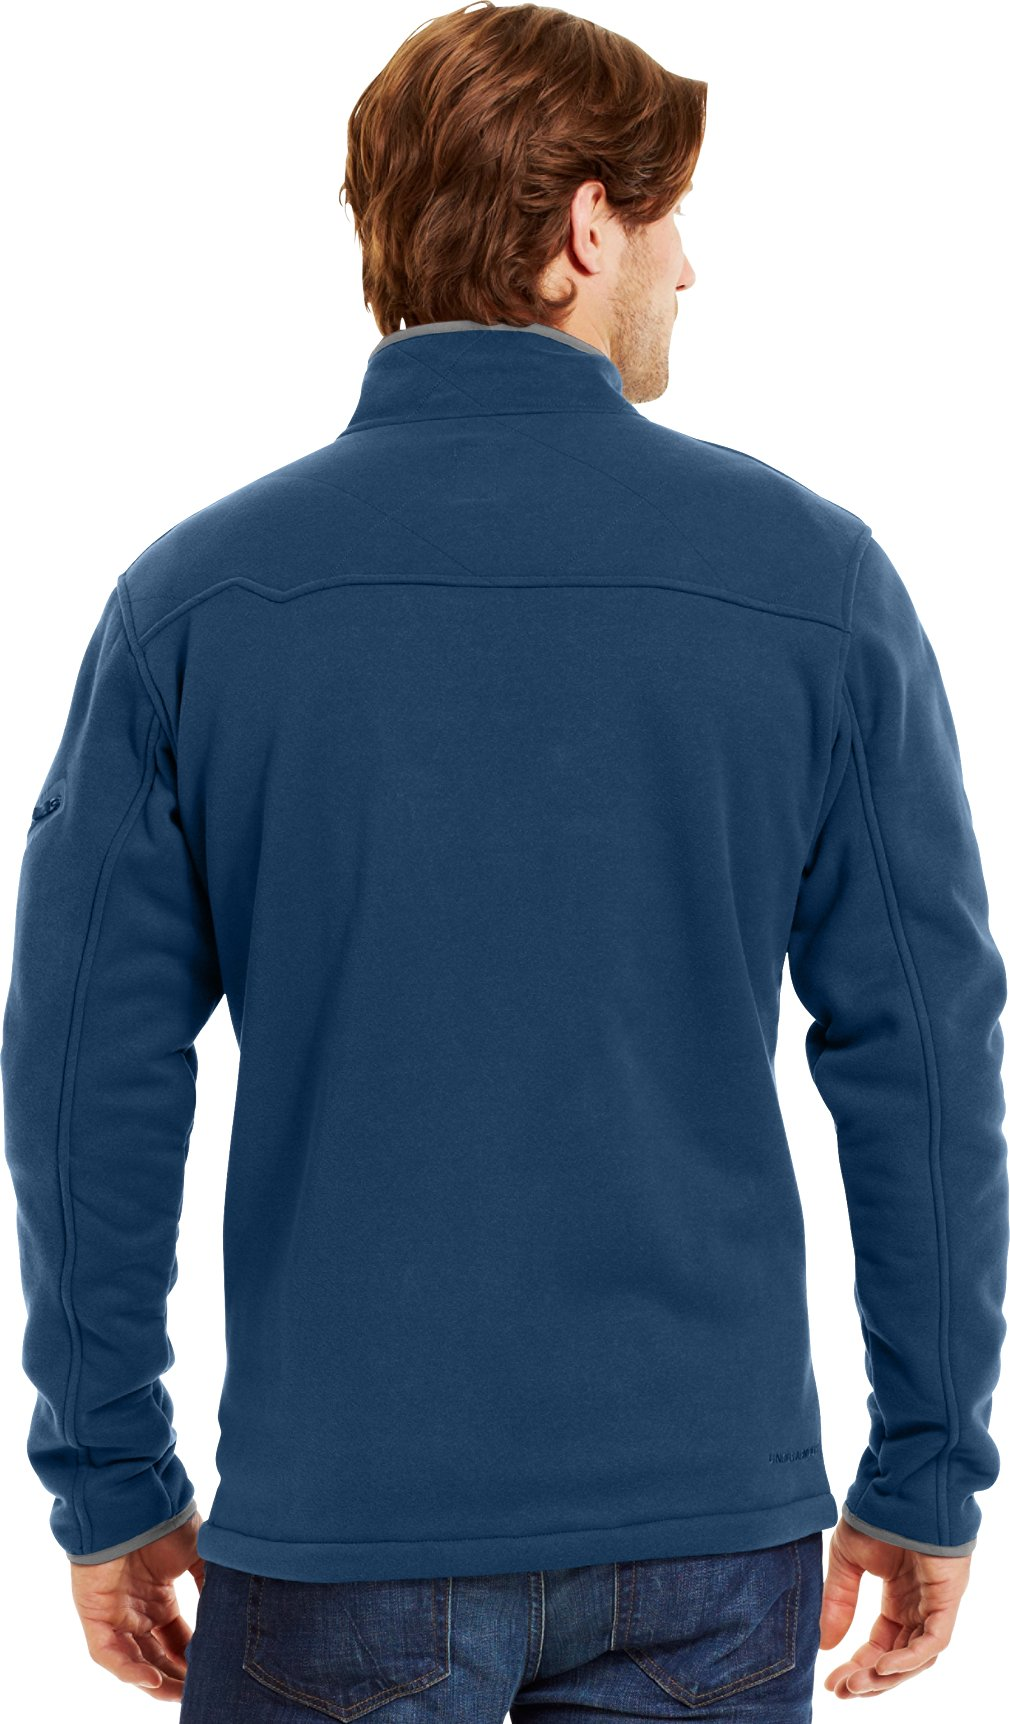 Men's Extreme ColdGear® Jacket, PETROL BLUE, Back